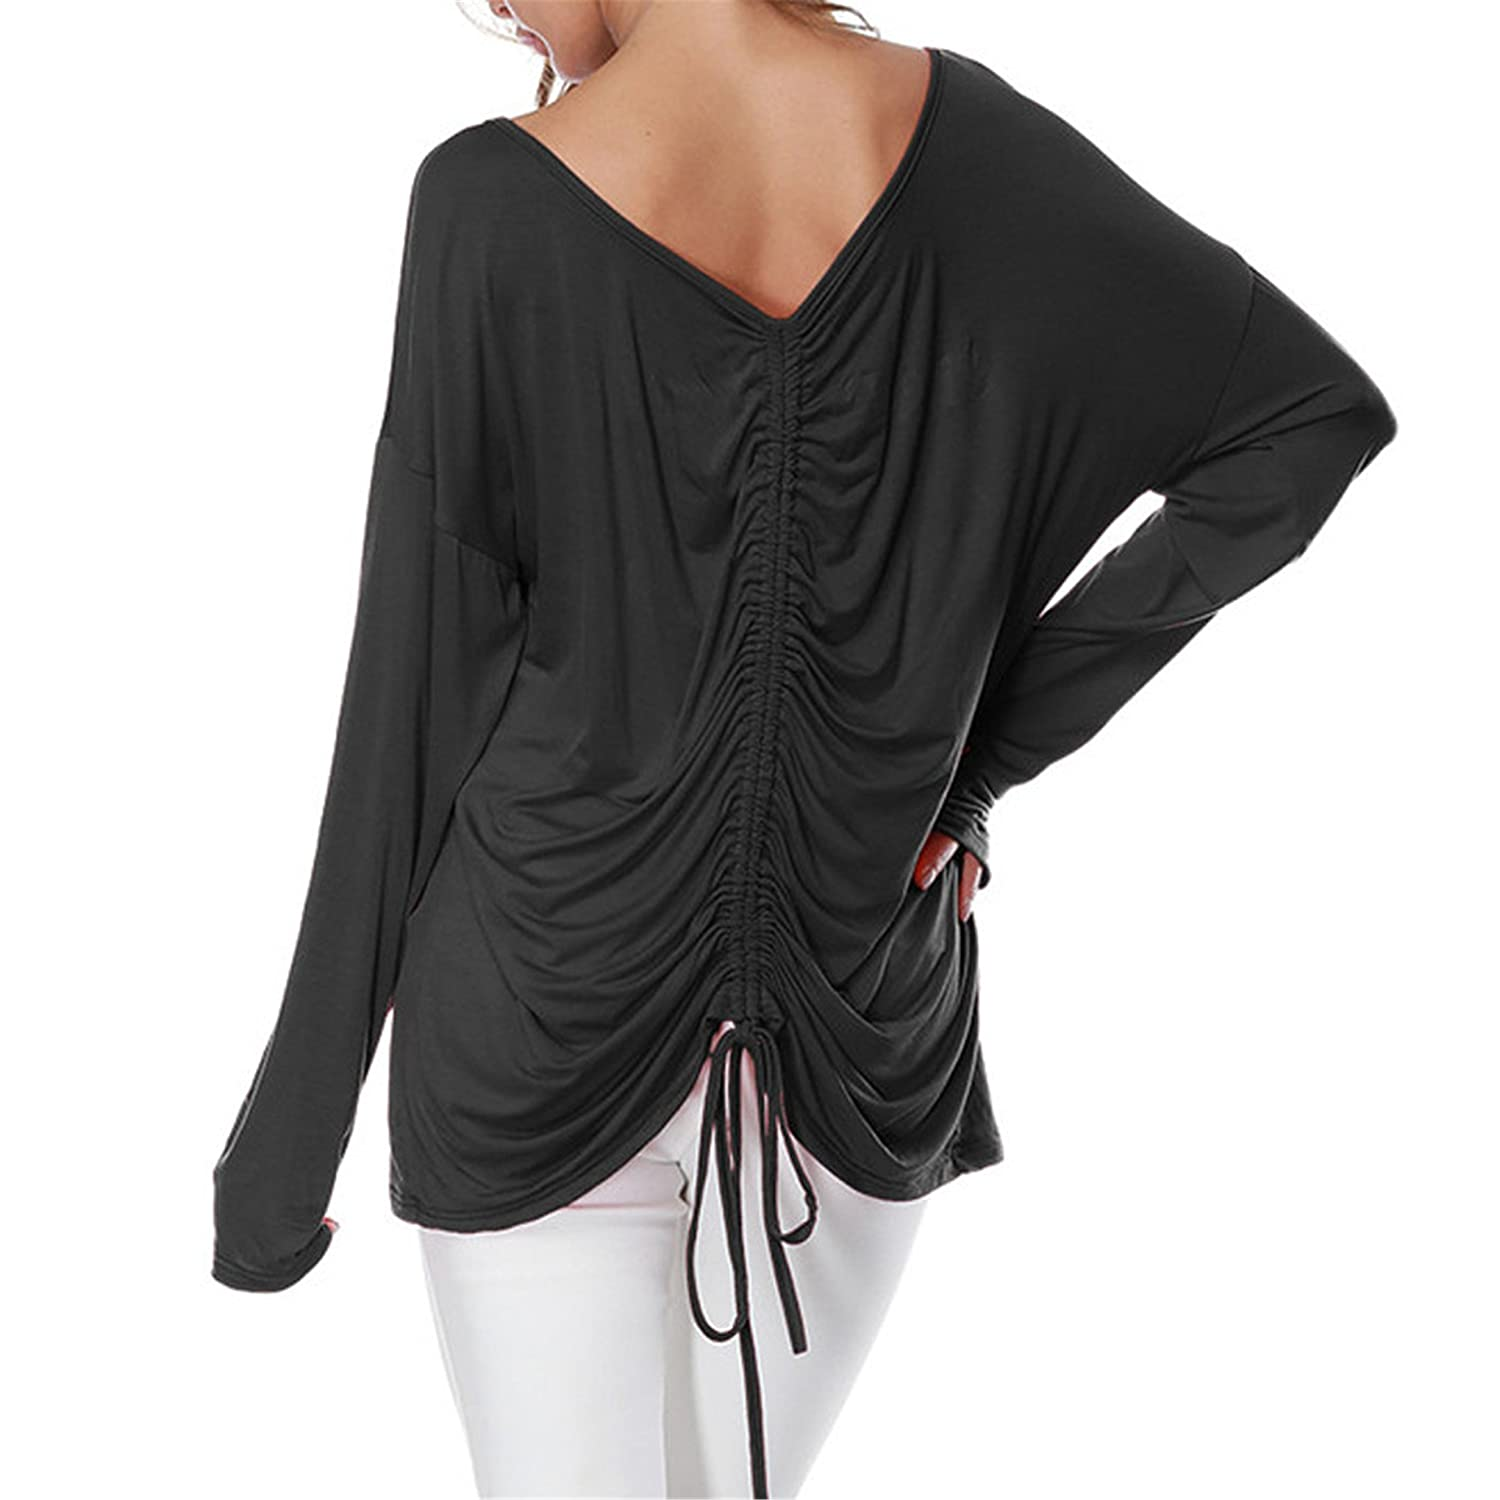 Londony Newest Arrivals Winter Lace up Pleated Batwing Shirt Blouses Long Sleeve Tunic Symmetric Hem Tops for Womens